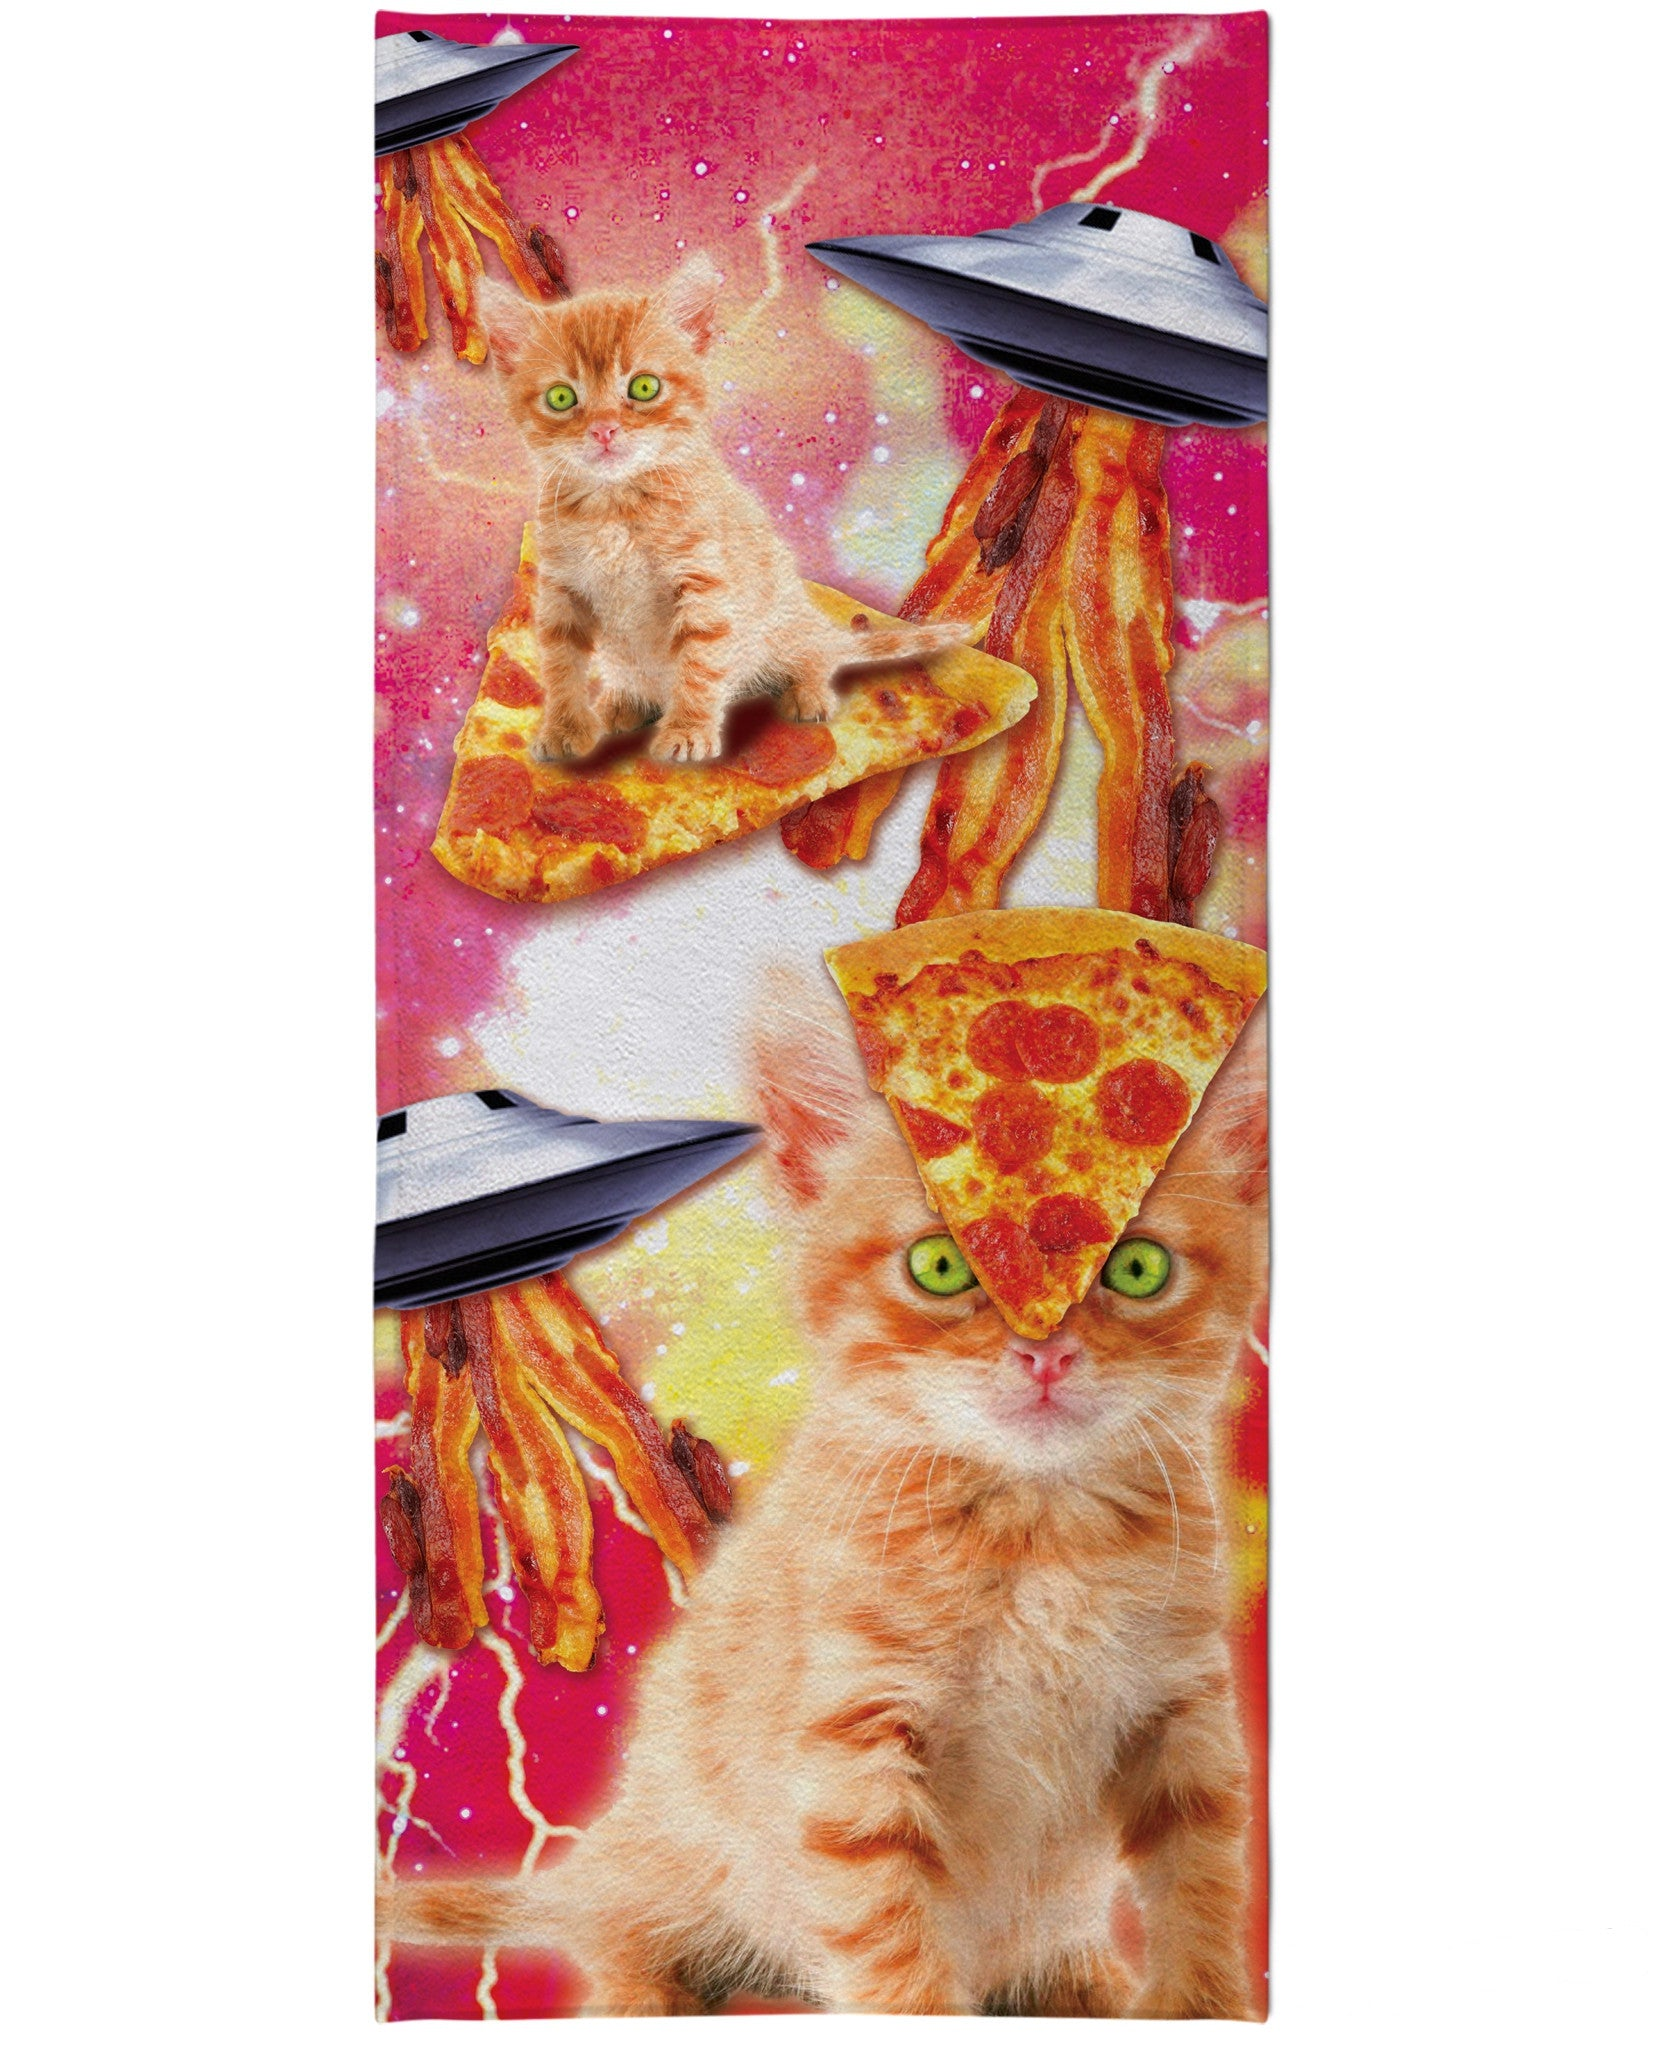 Bacon Pizza Space Cat Beach Towel - TShirtsRUS.co